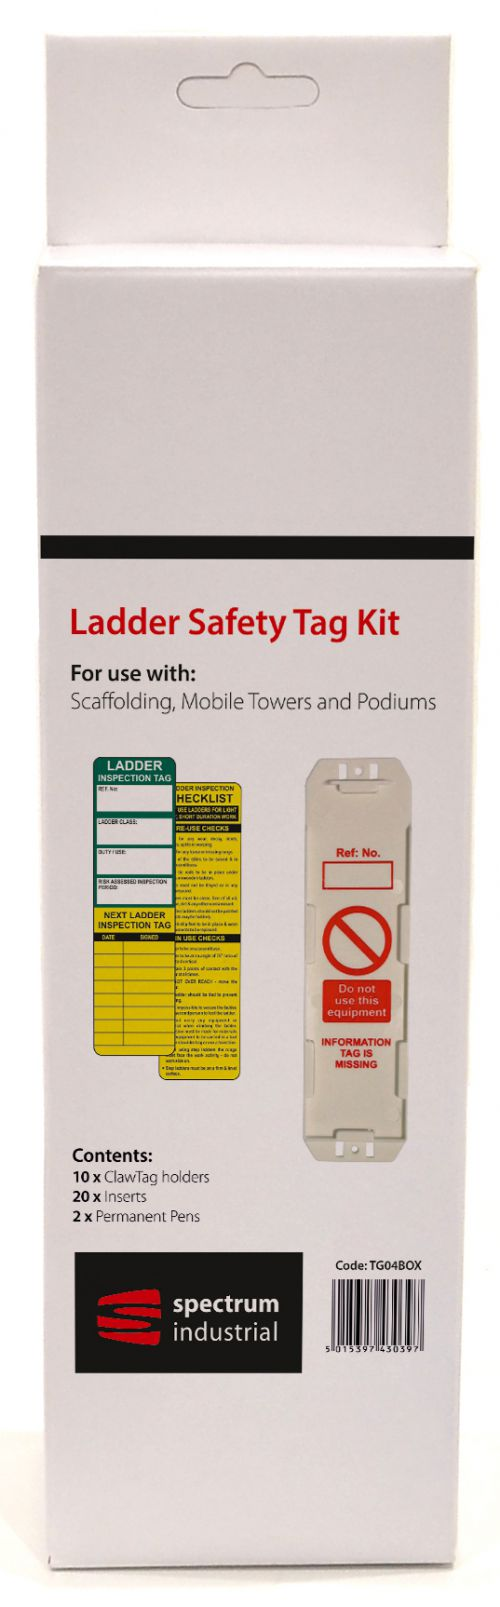 Spectrum Industrial Ladder Tagging System Box TG04BOX